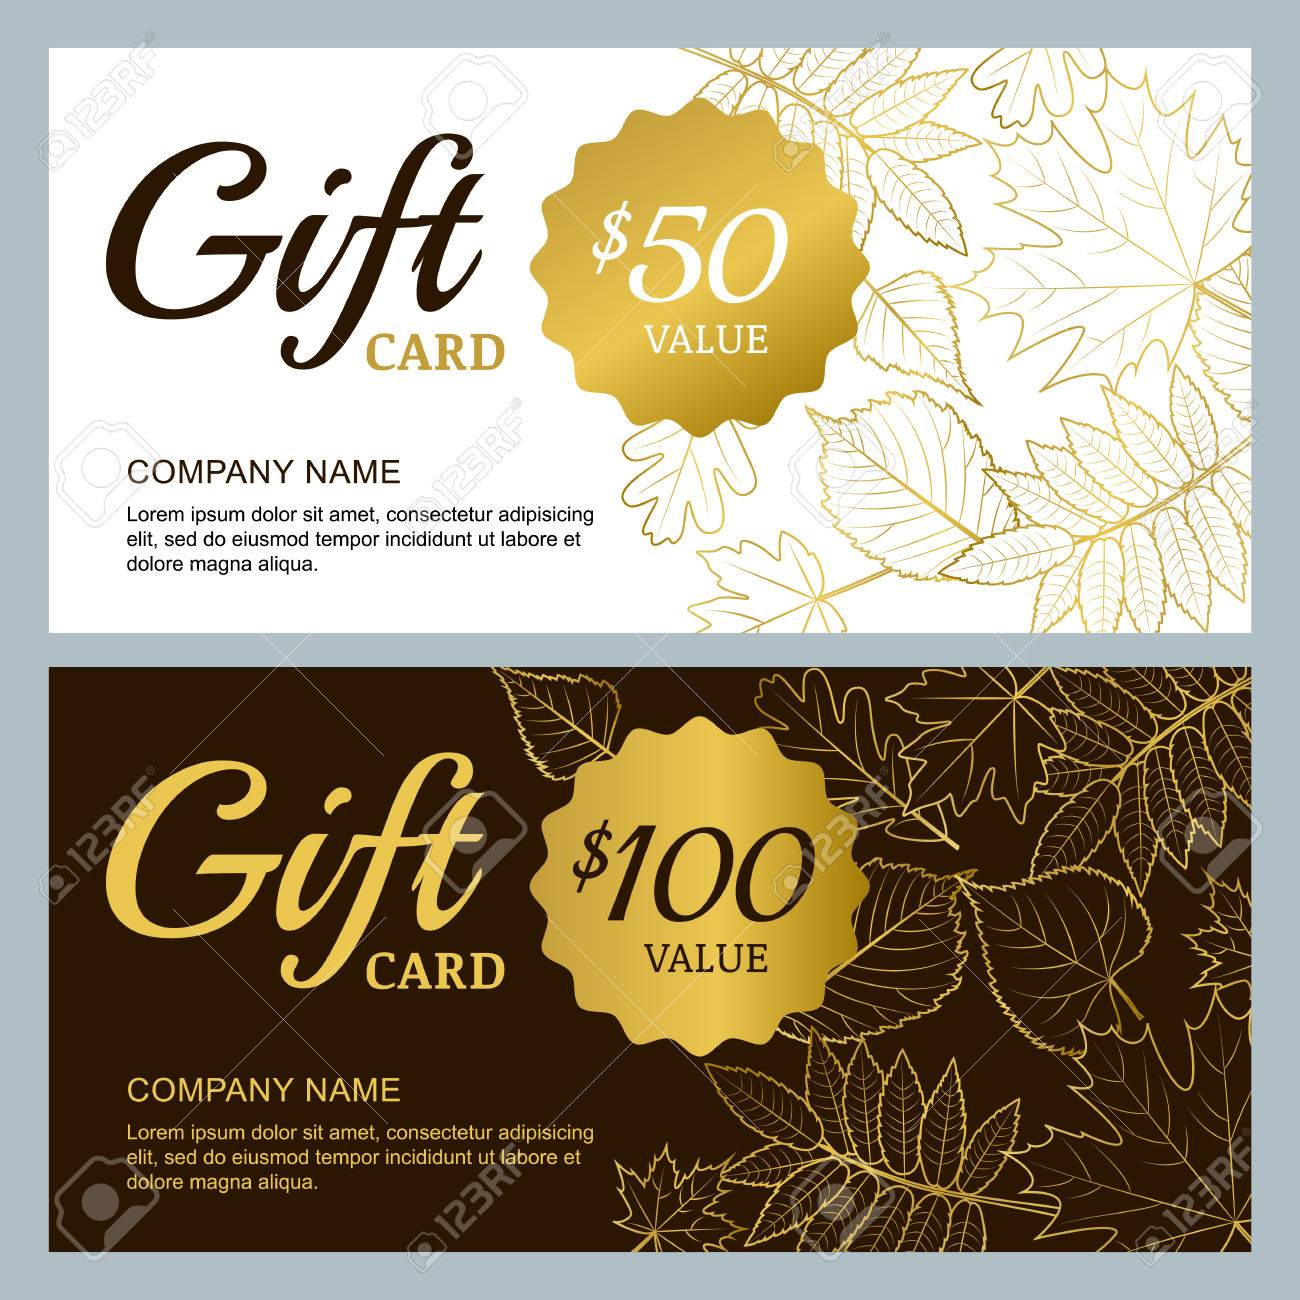 Vector gift voucher template with golden outline fall leaves vector vector gift voucher template with golden outline fall leaves gold black and white autumn holidays cards design concept for gift coupon yelopaper Gallery